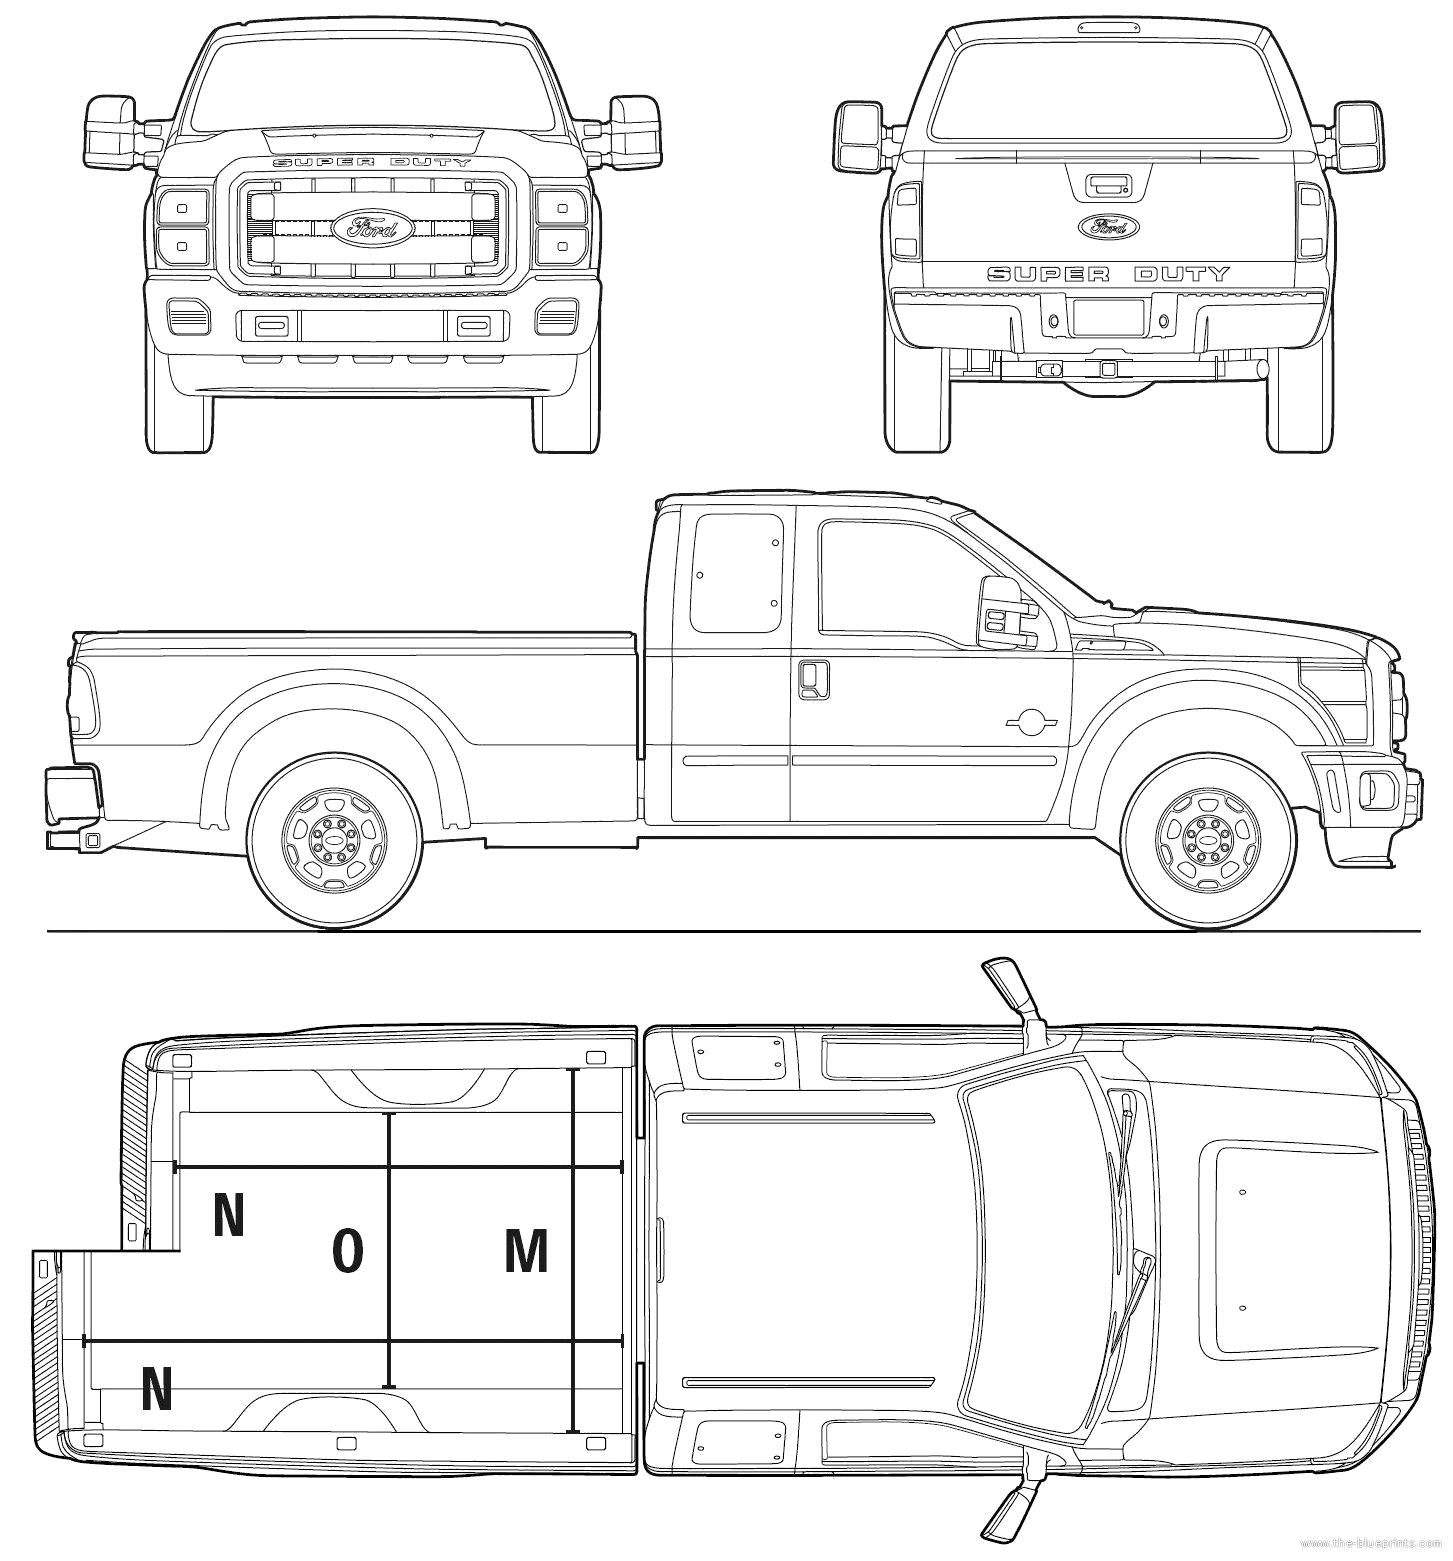 F250 Bumper Blueprints : Blueprints gt cars ford super duty extended cab